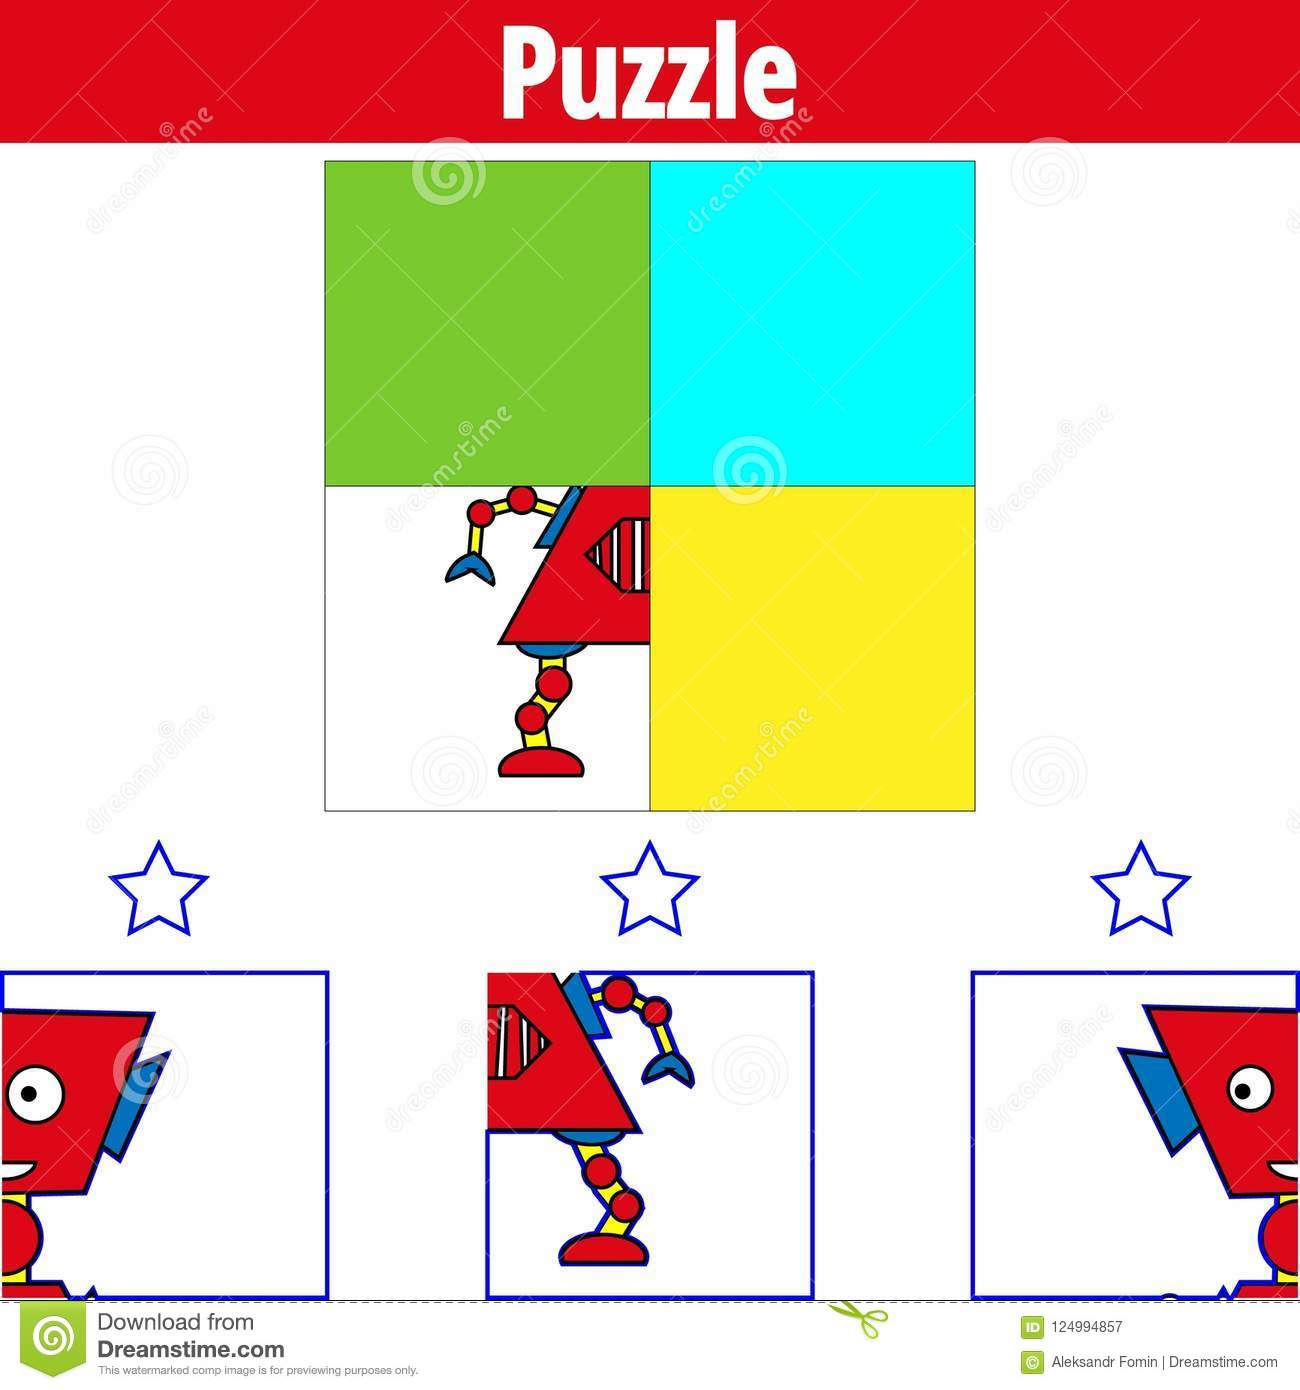 Puzzle Game Visual Educational Game For Children